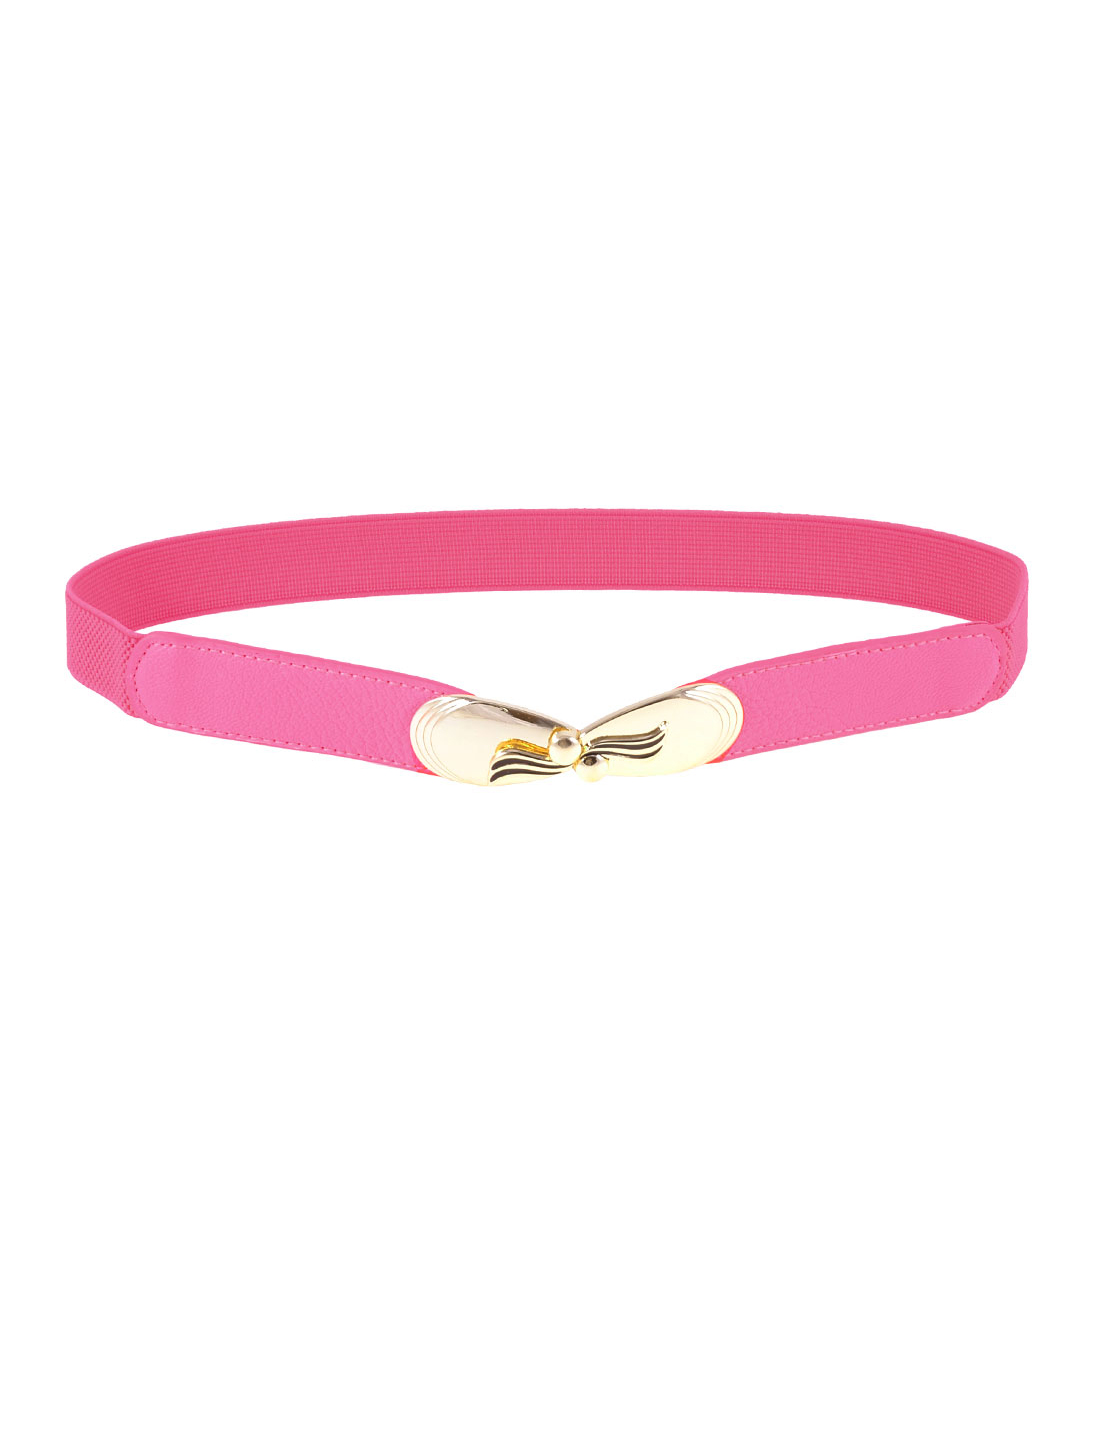 Women Gold Tone Bowknot Decor Hot Pink Elastic Skinny Waist Belt Band